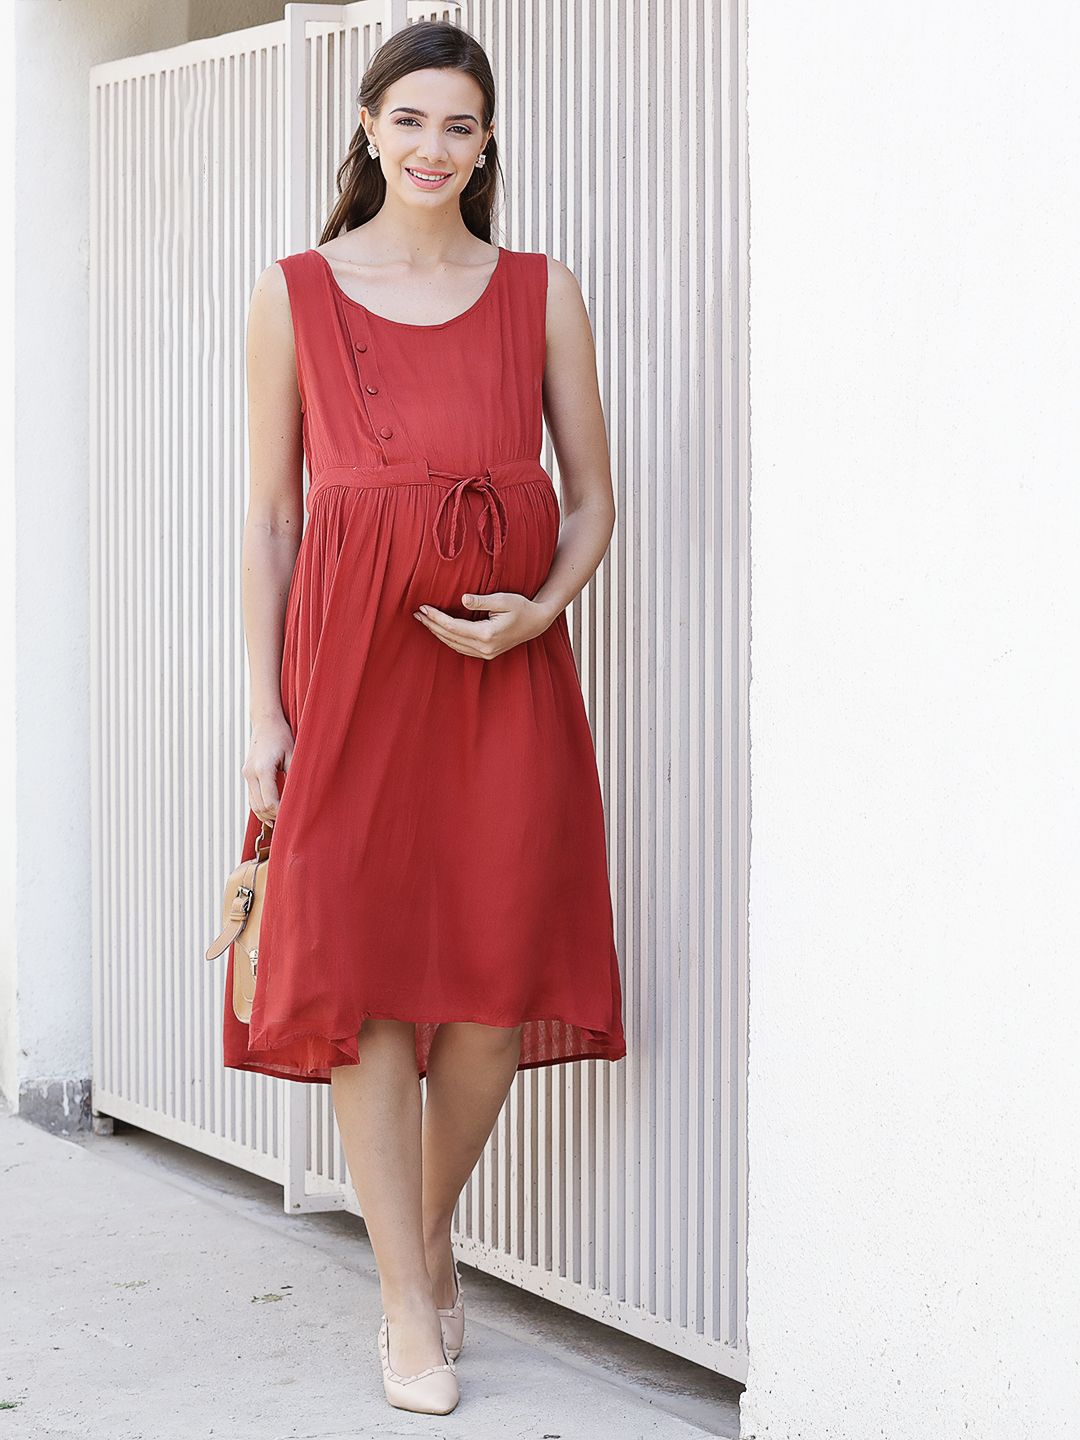 Fire Brick Red  A-line Maternity Dress Made of  Rayon- Mine4Nine